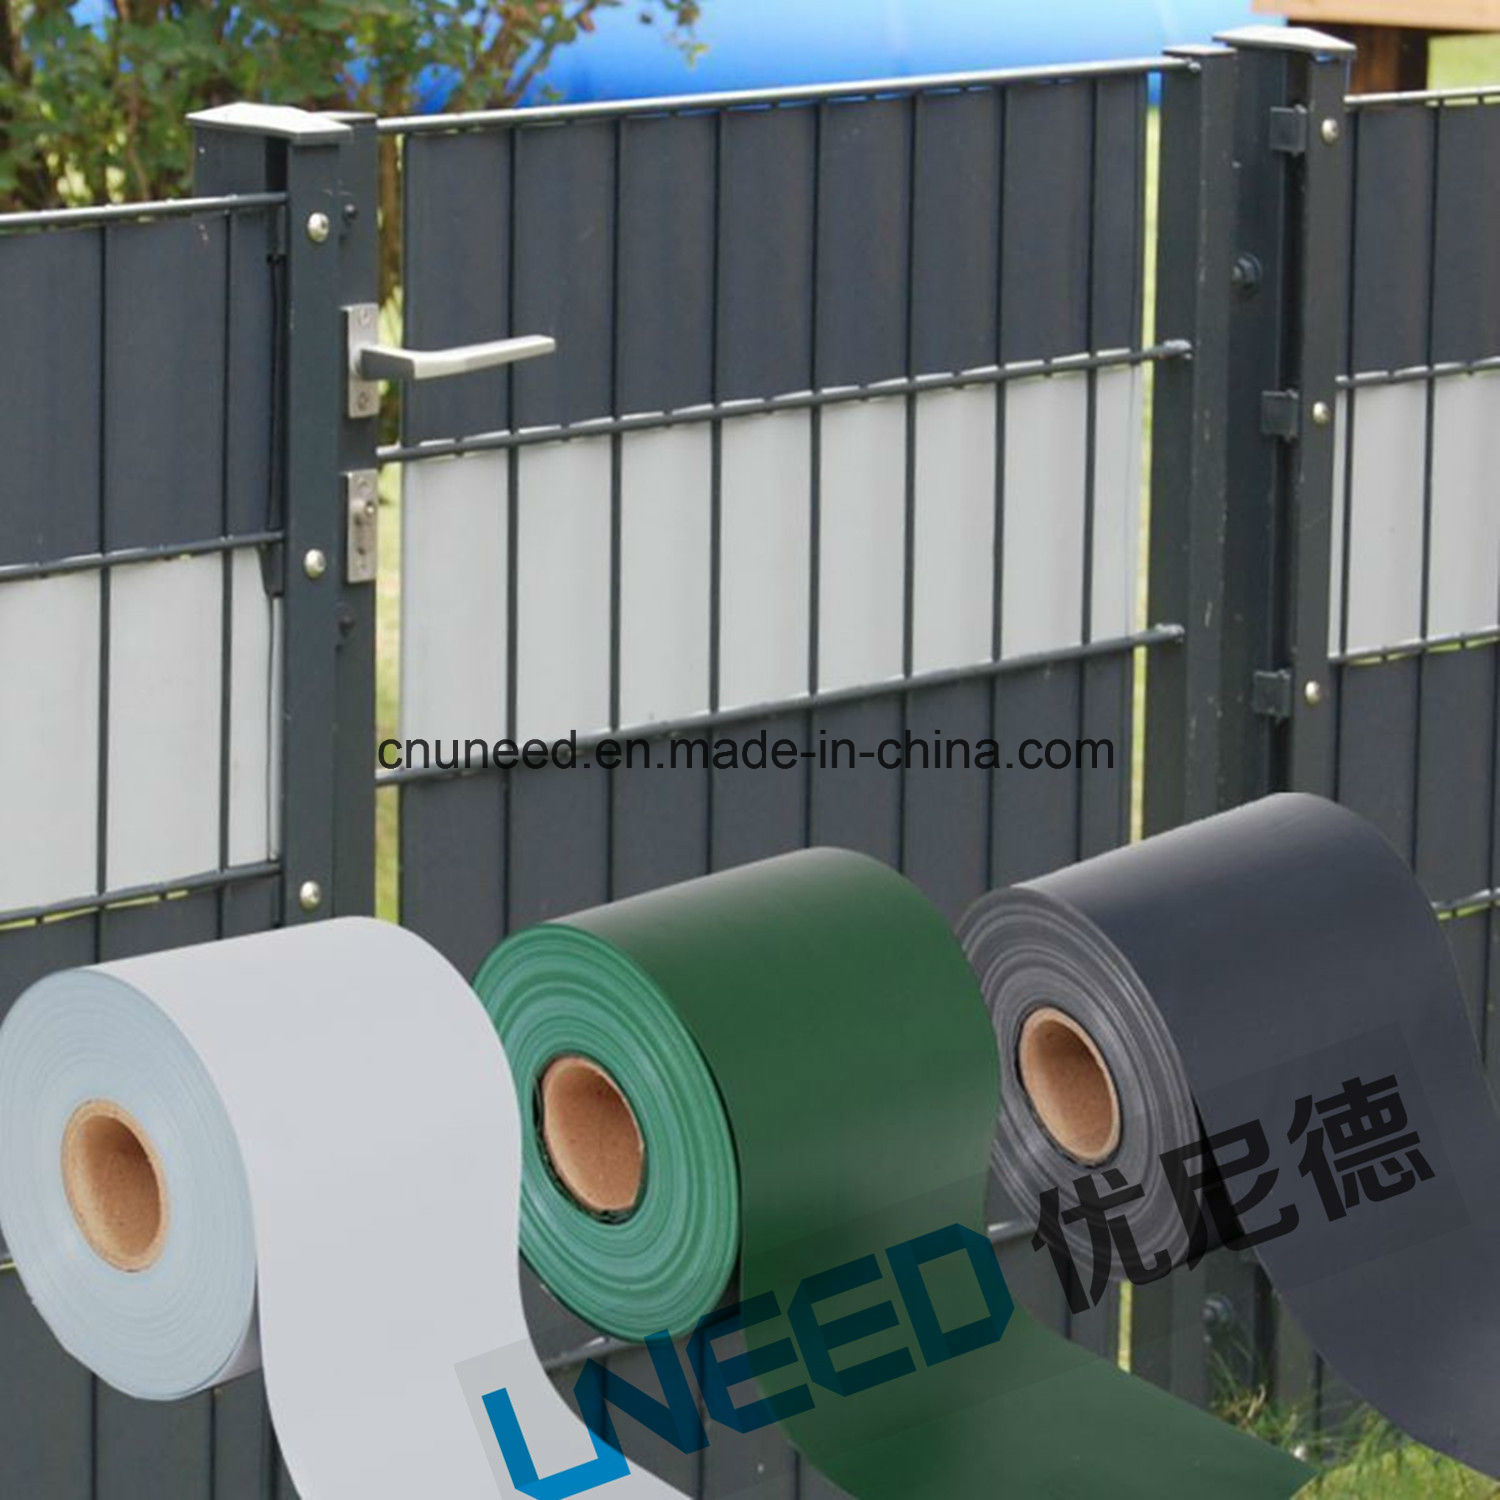 China New Products PVC Screen Strip for Garden Fence Protection